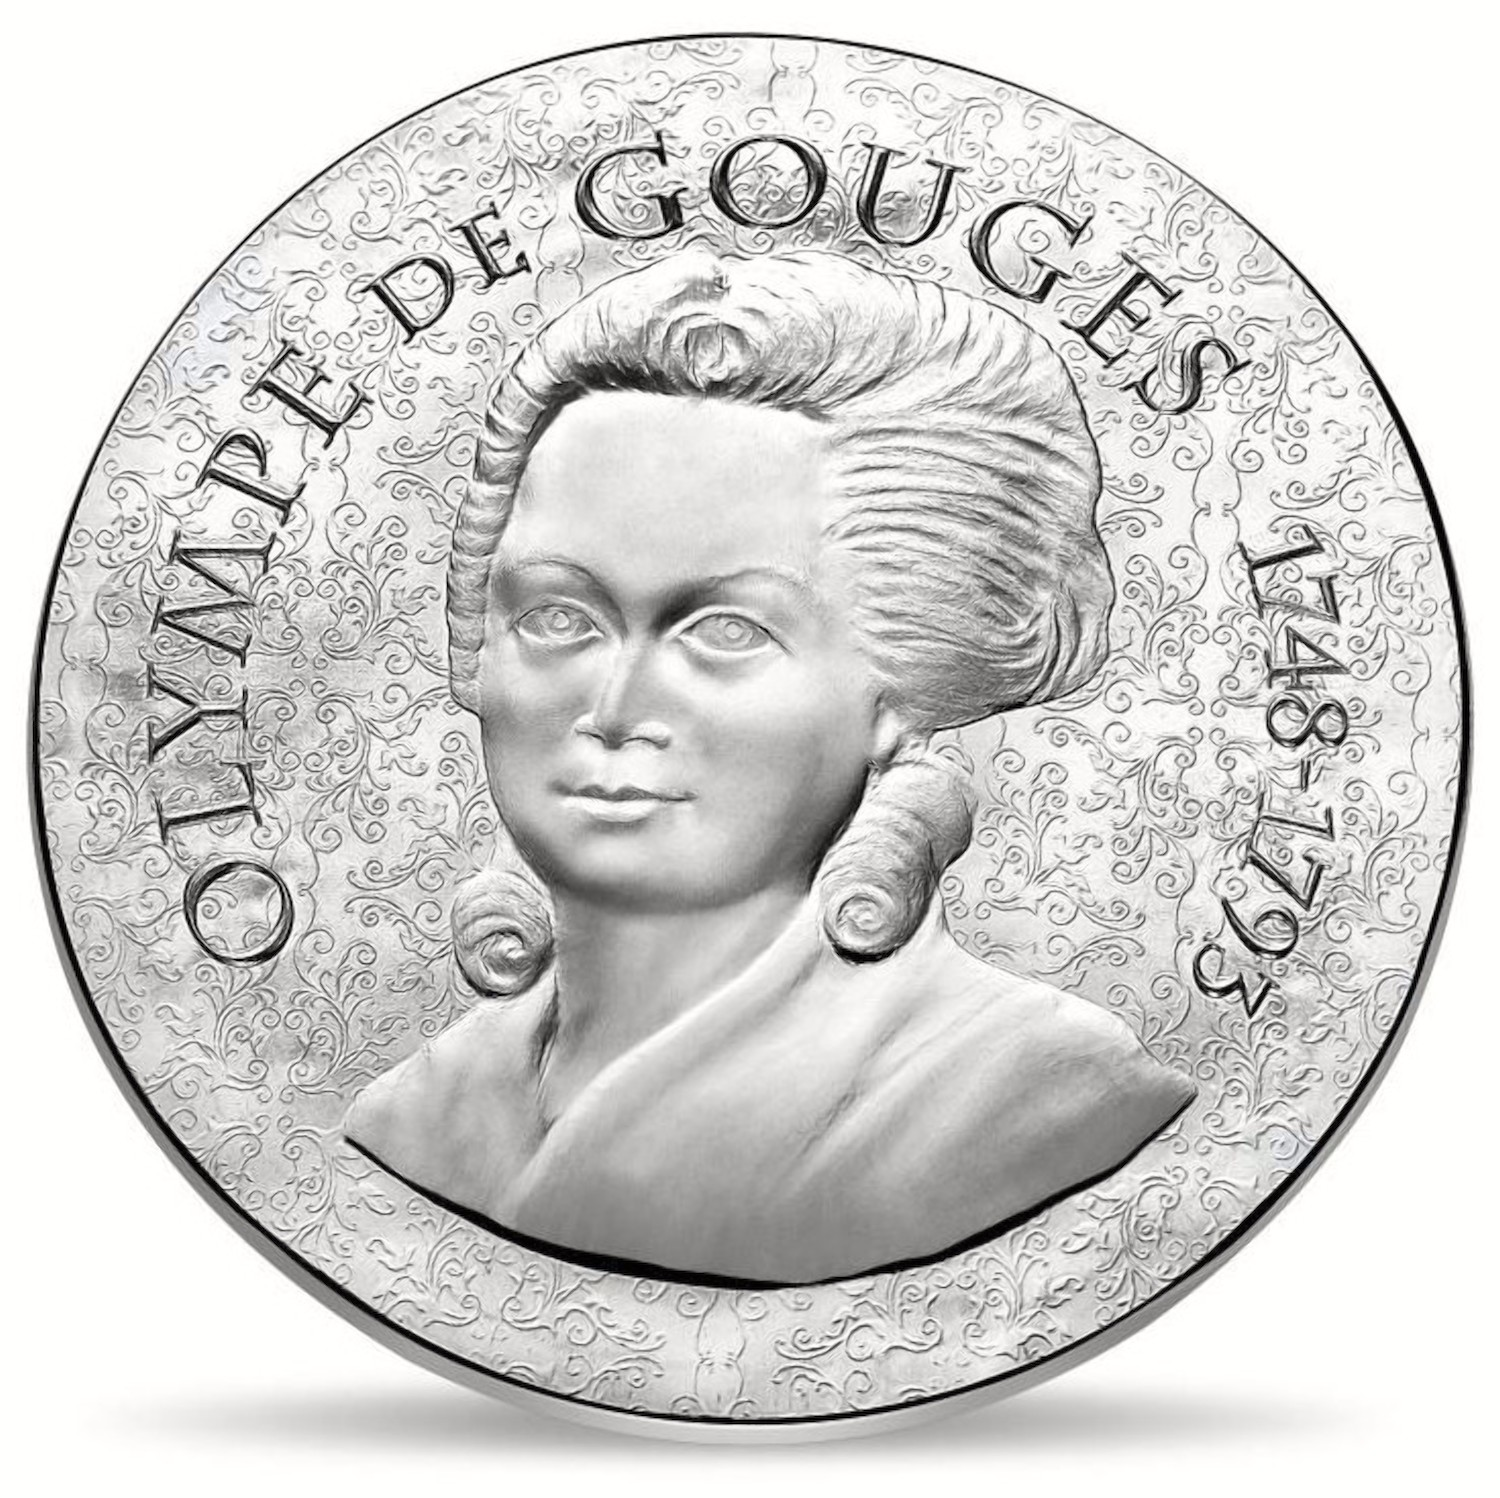 Women Of France Coin Series Heralds Revolutionary Pioneer